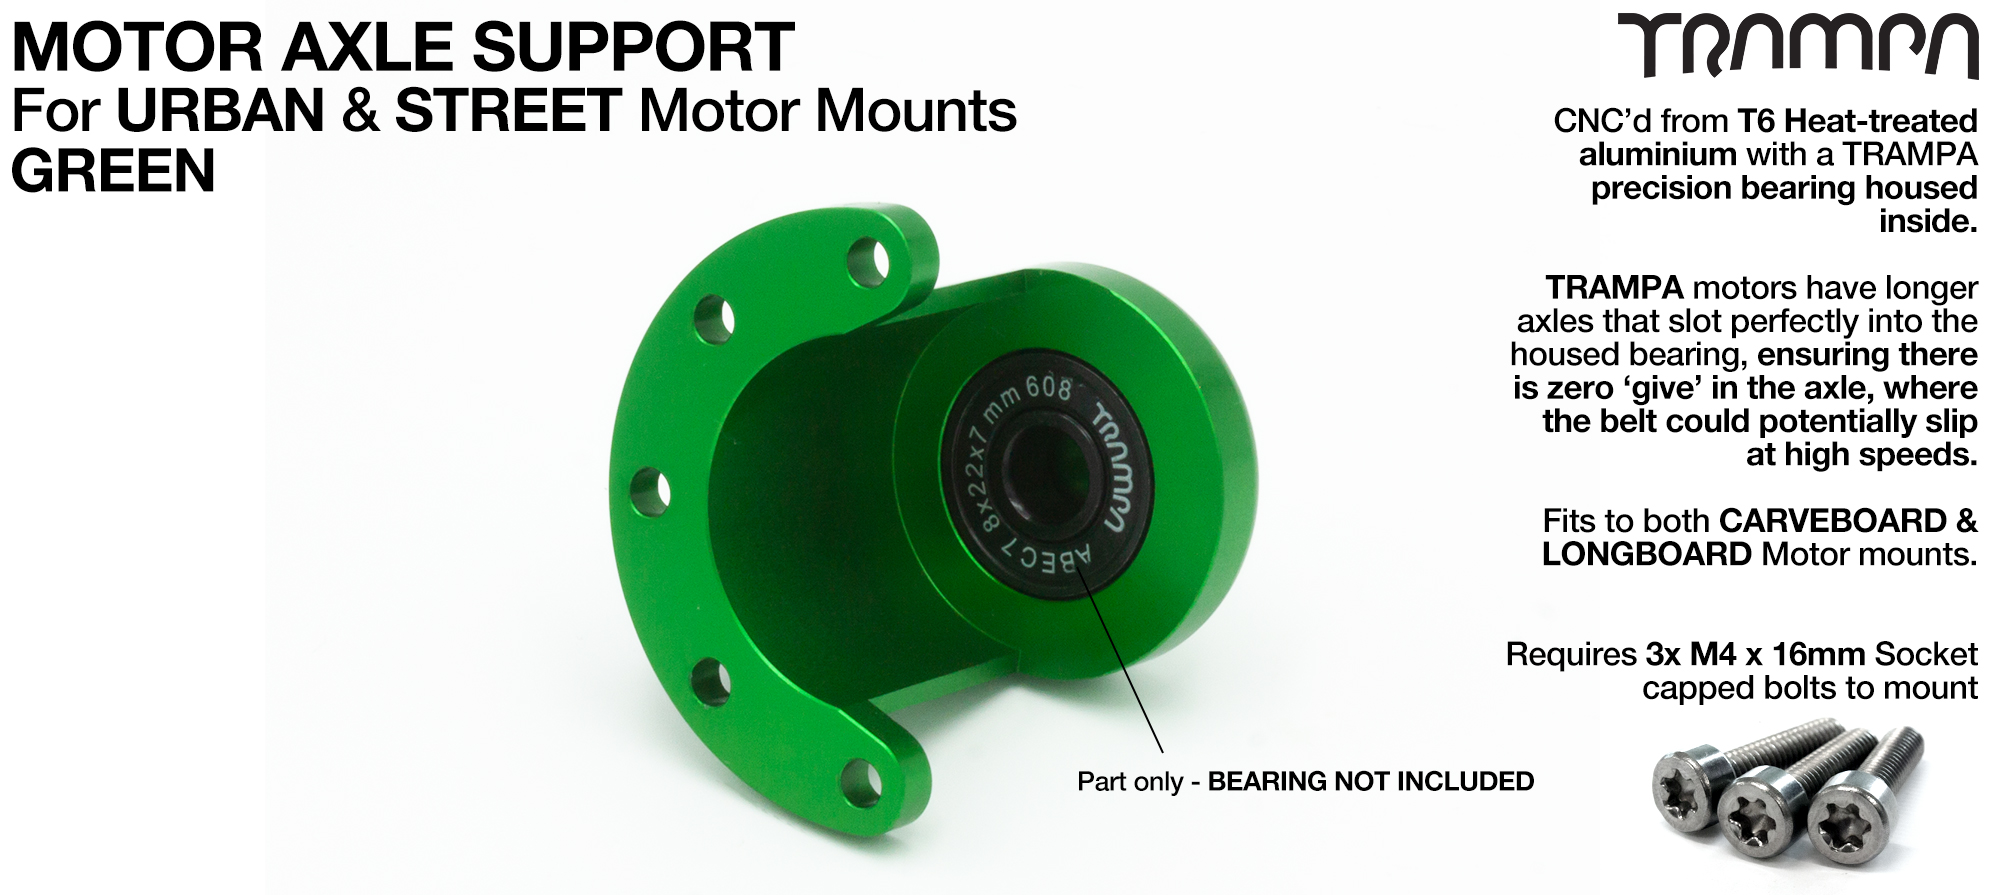 Motor Axle Support for Spring Truck Motor Mounts UNIVERSAL - GREEN